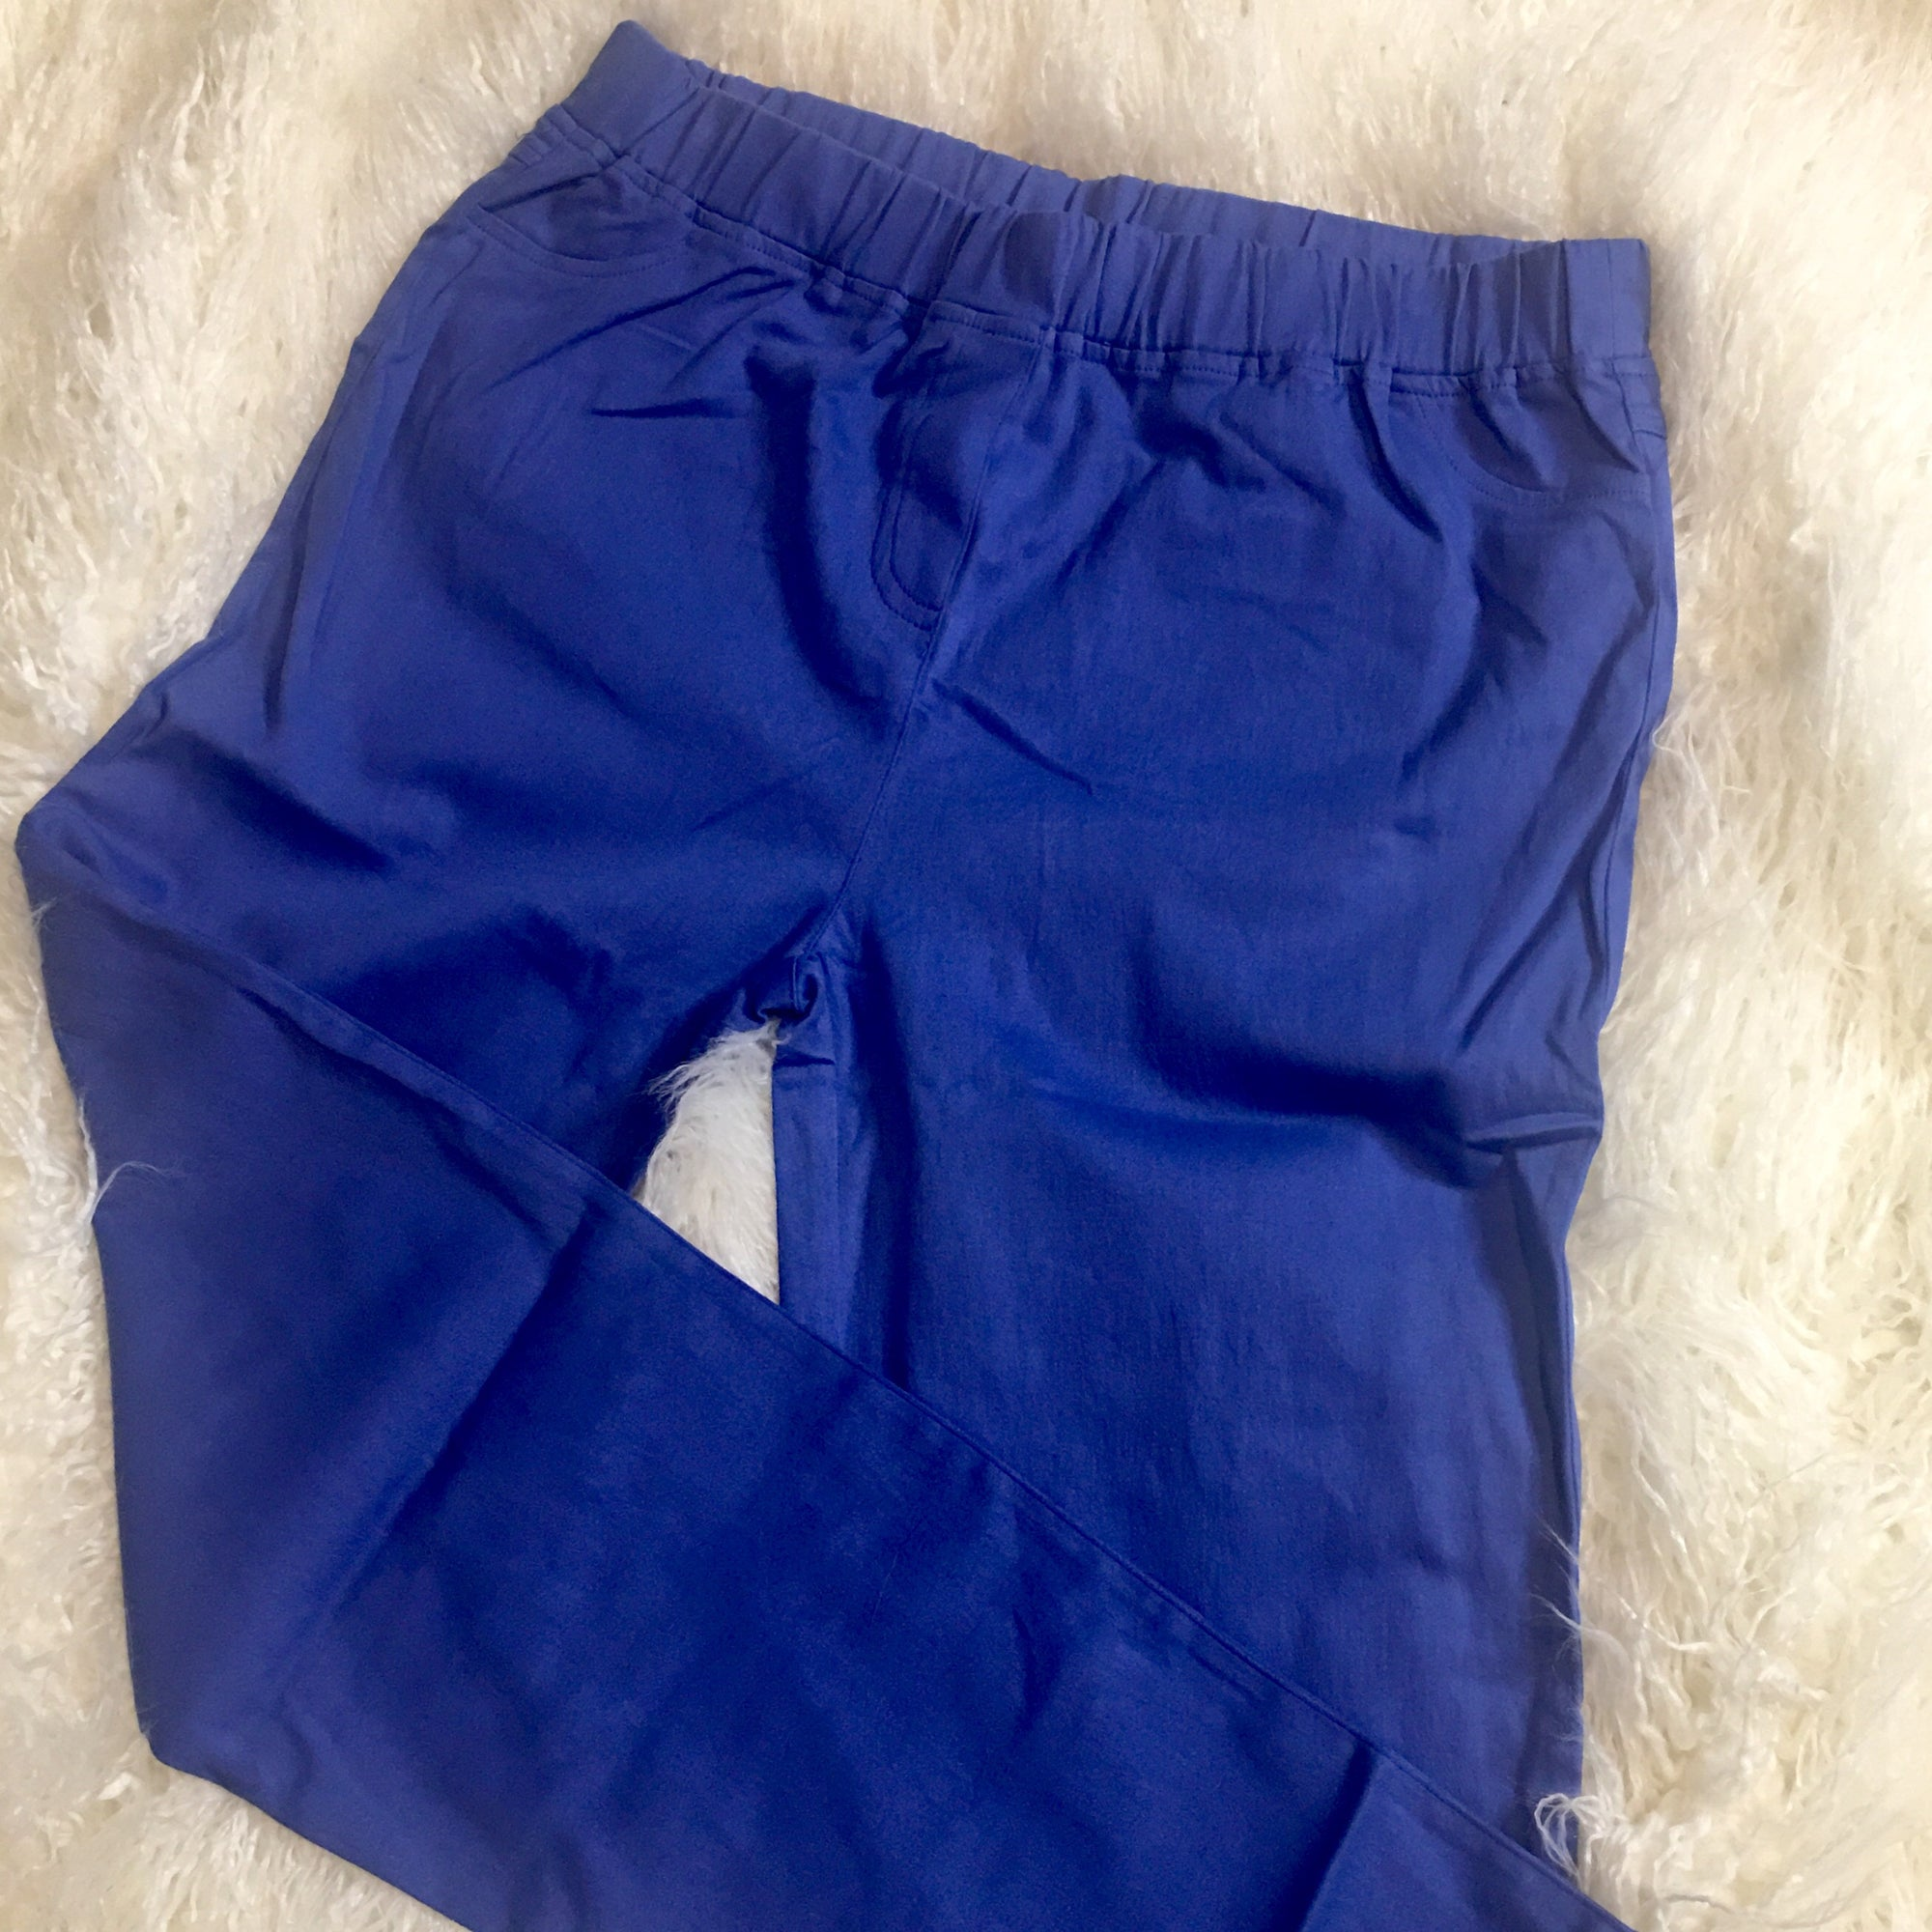 Cobalt Casual Leggings